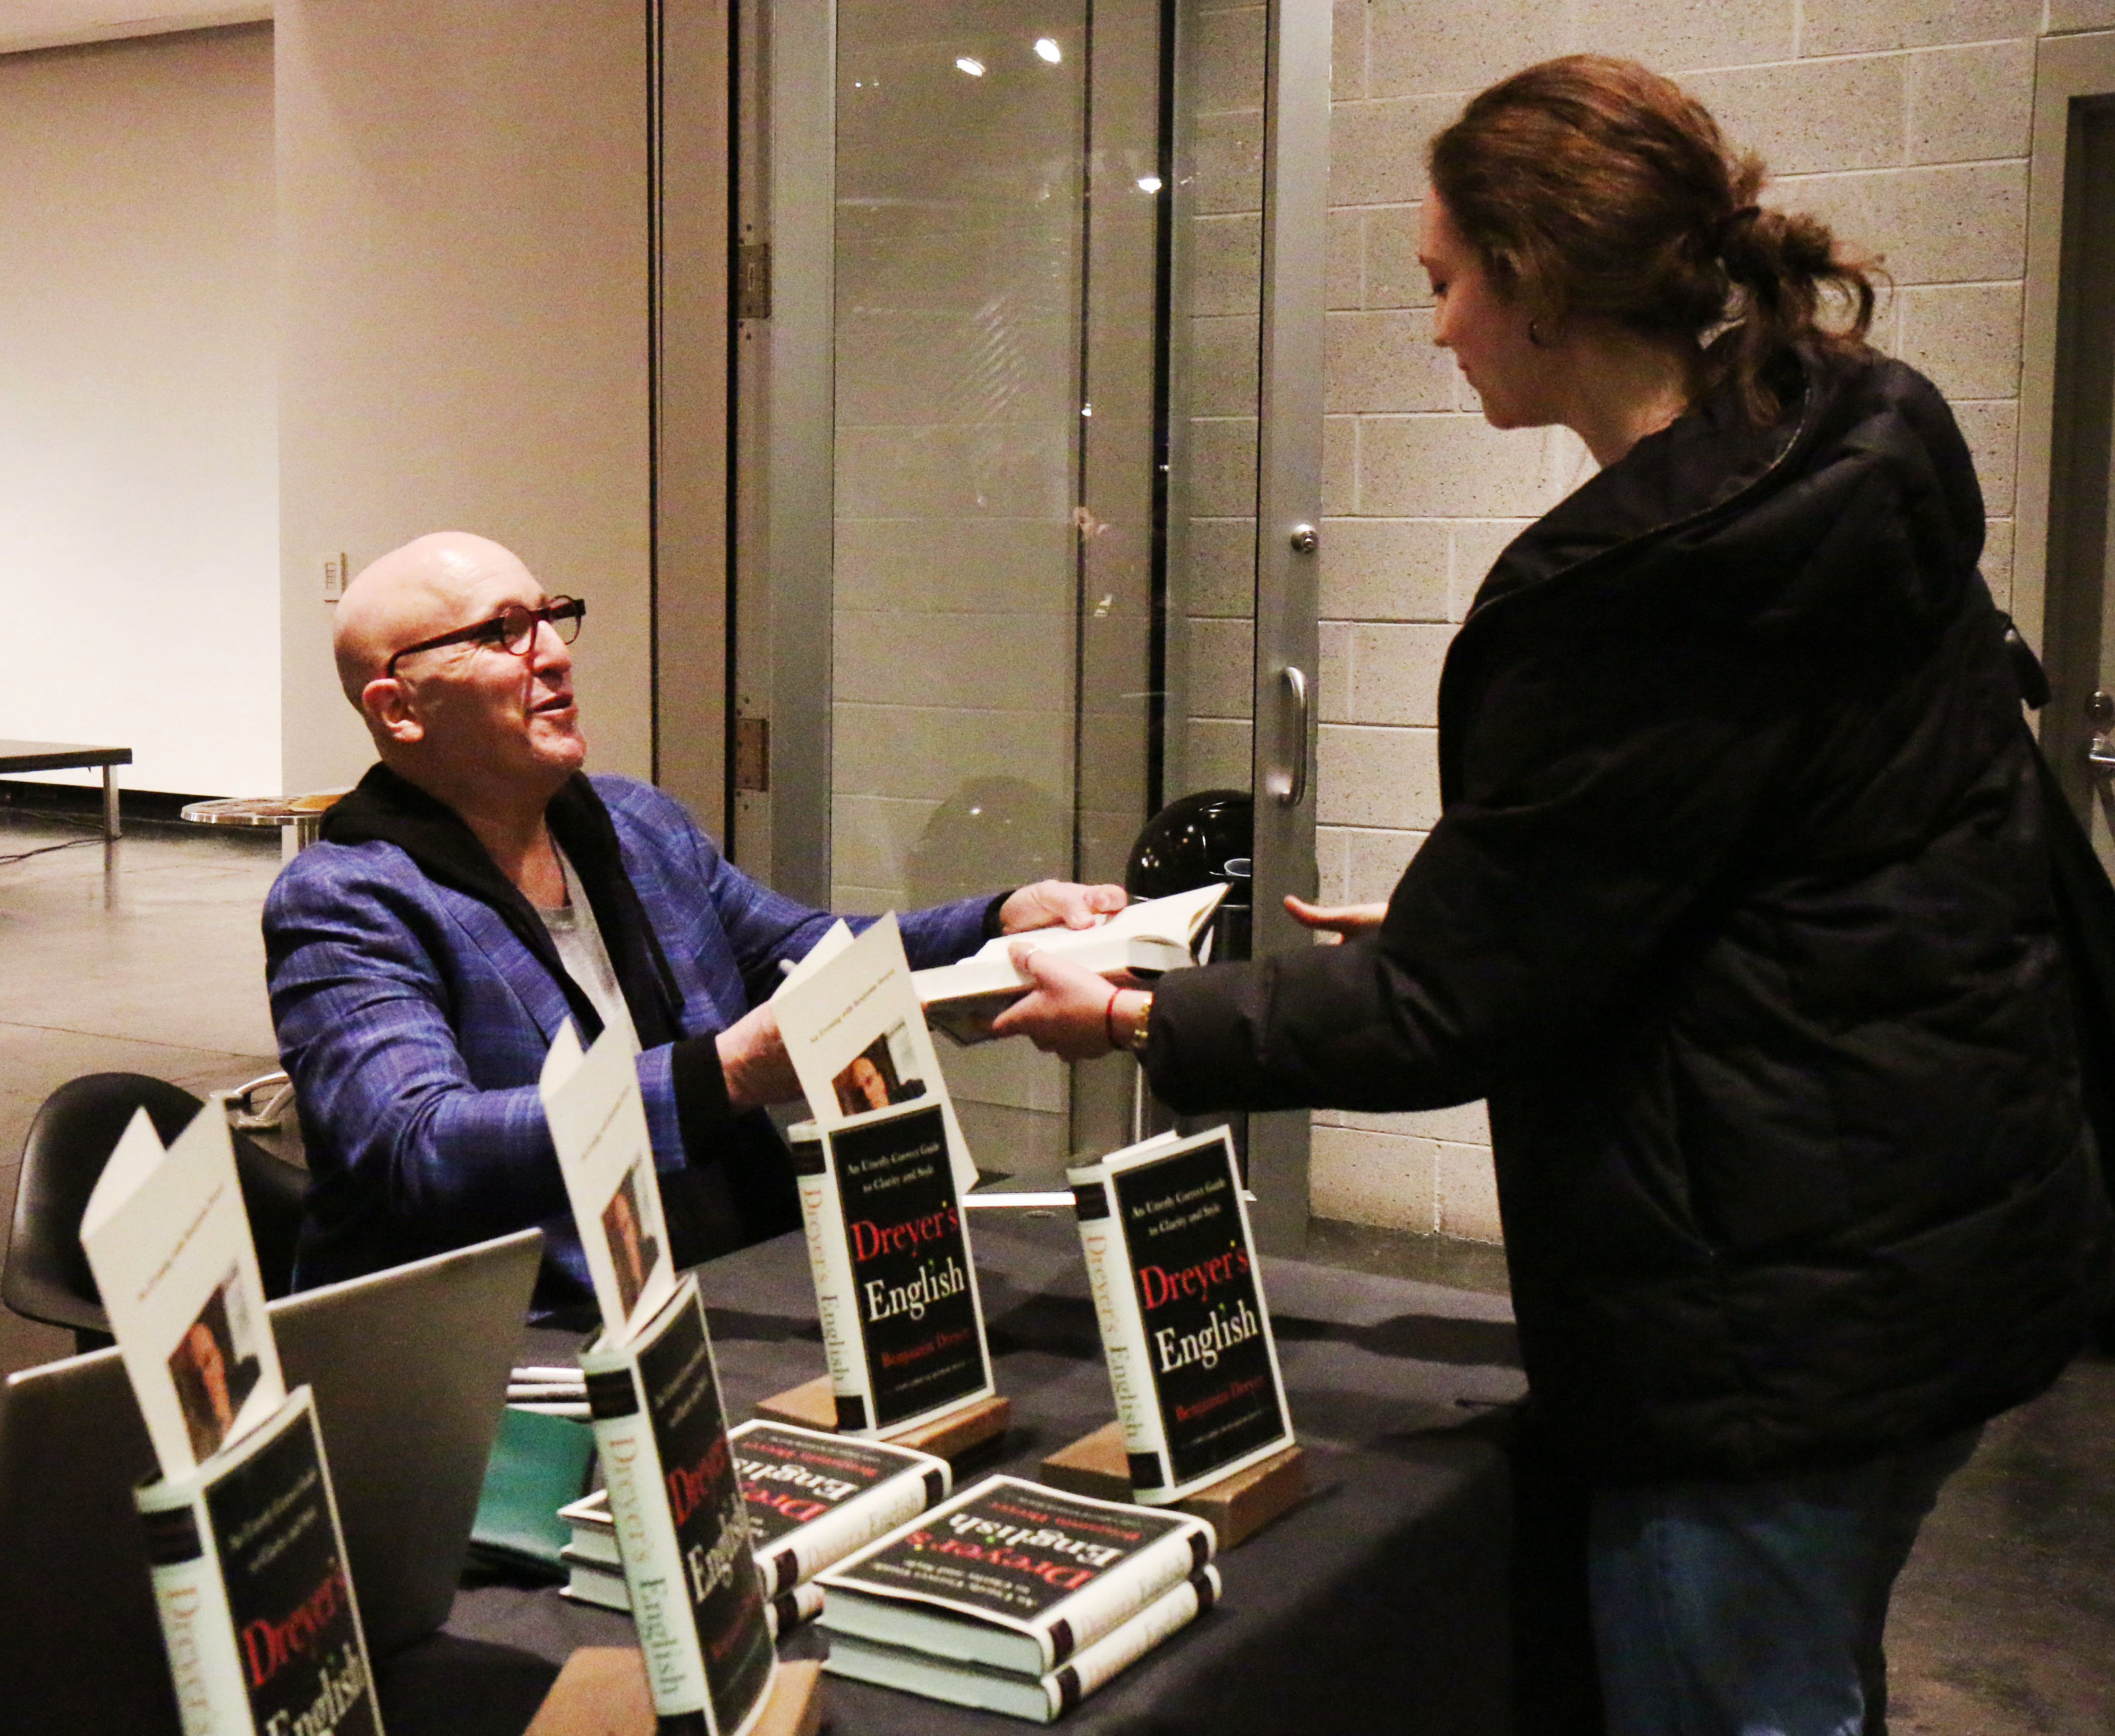 Dreyer signs copies of his book for students